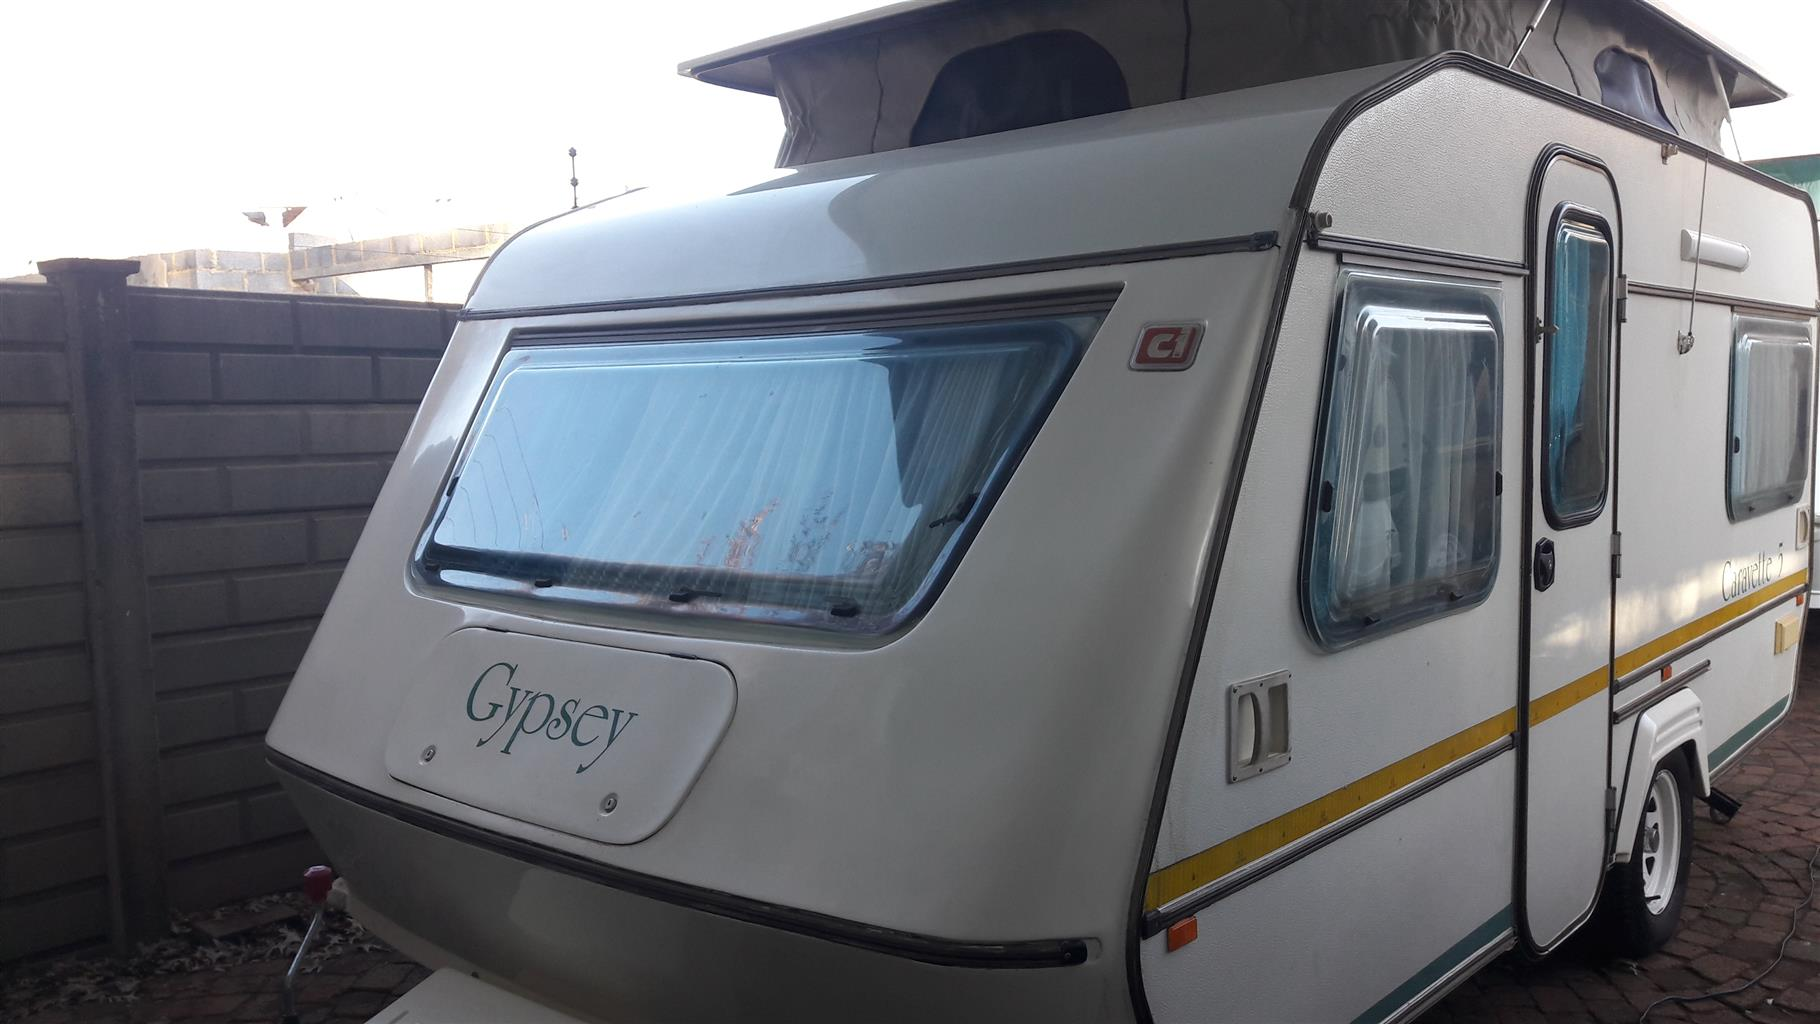 GYPSEY CARAVETTE 5 1990 MODEL WITH FULL TENT CONTACT 0835818449 IN VEREENIGING